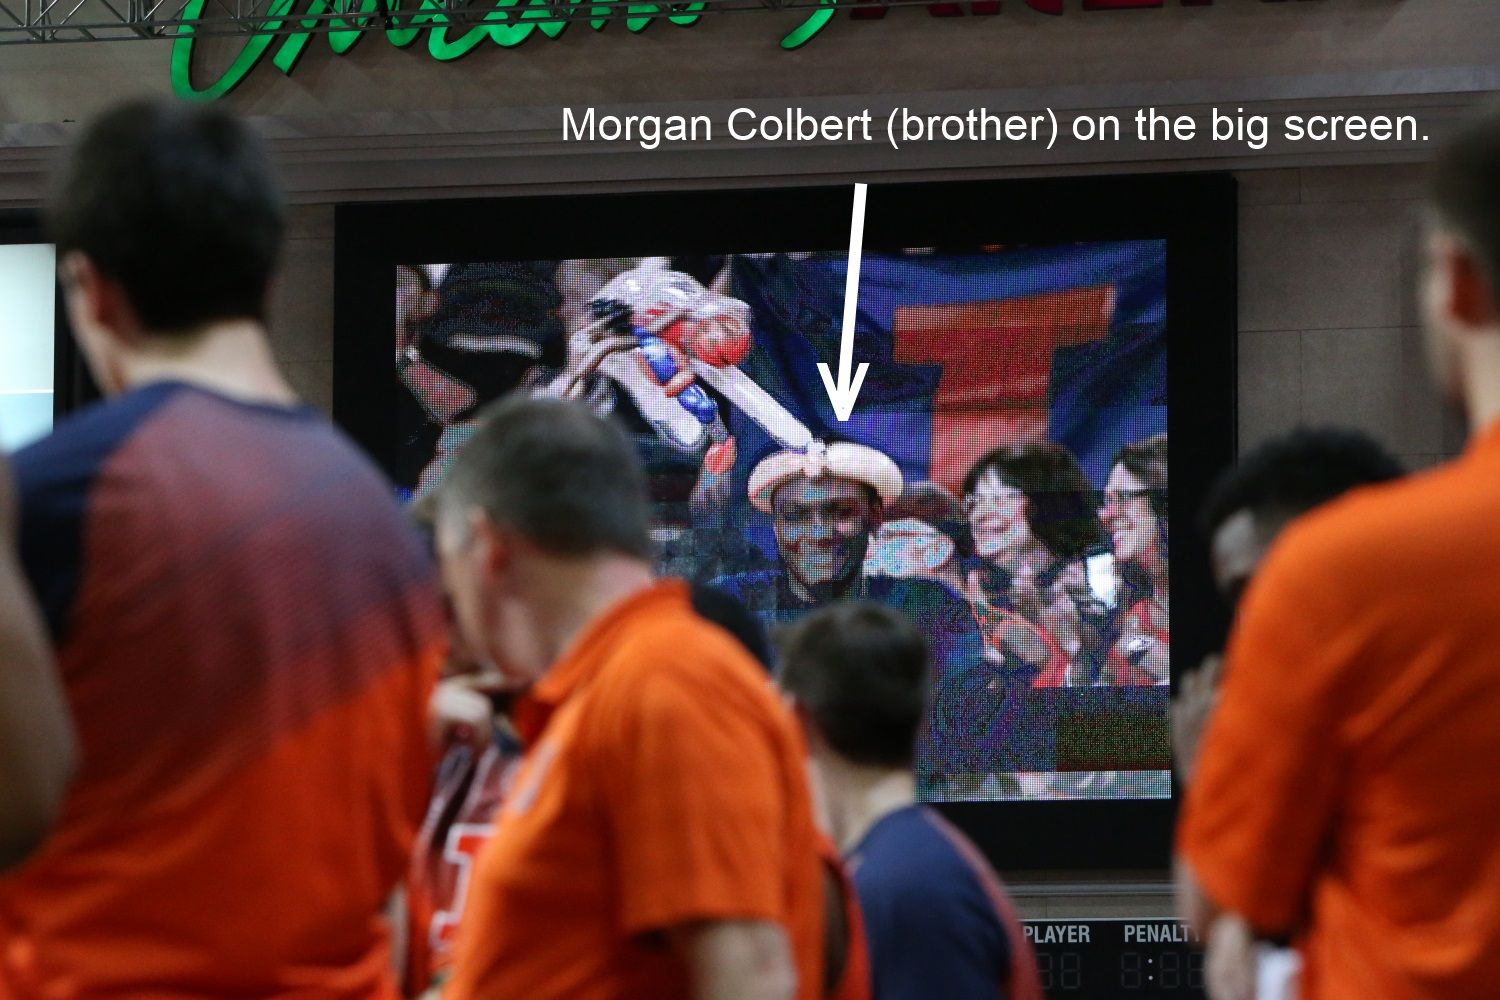 Morgan Colbert on big screen